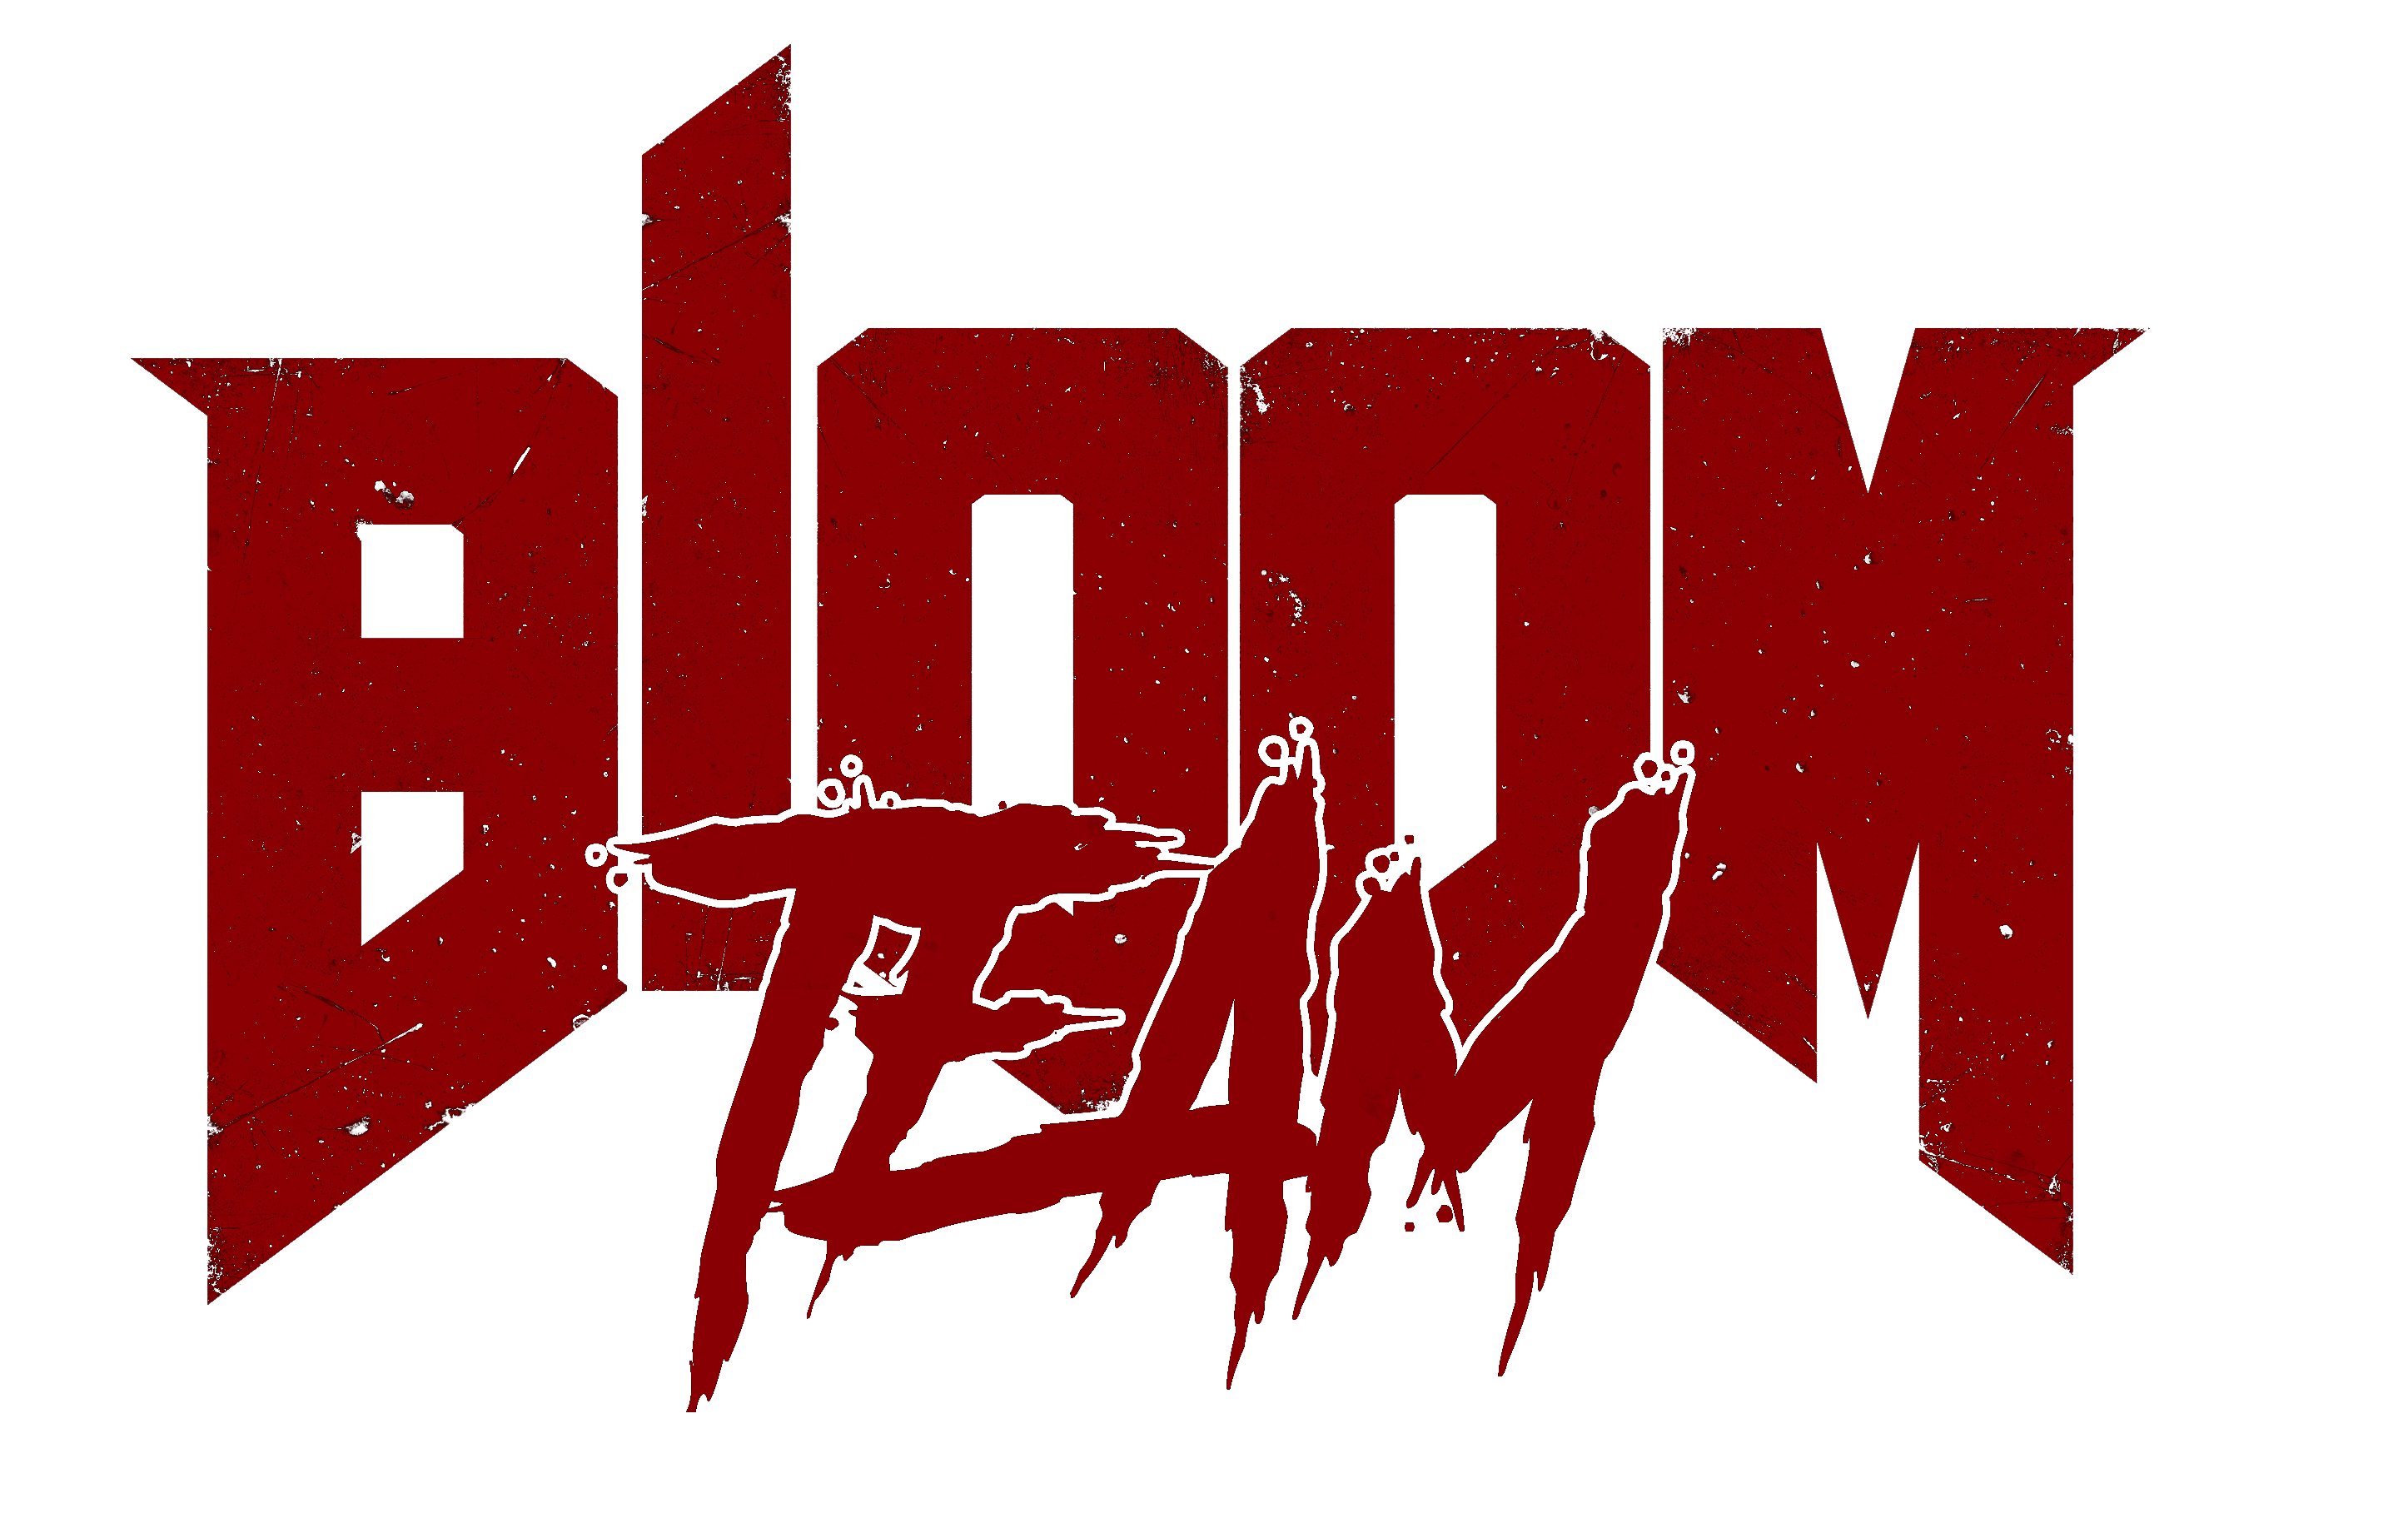 Bloom - The lore news